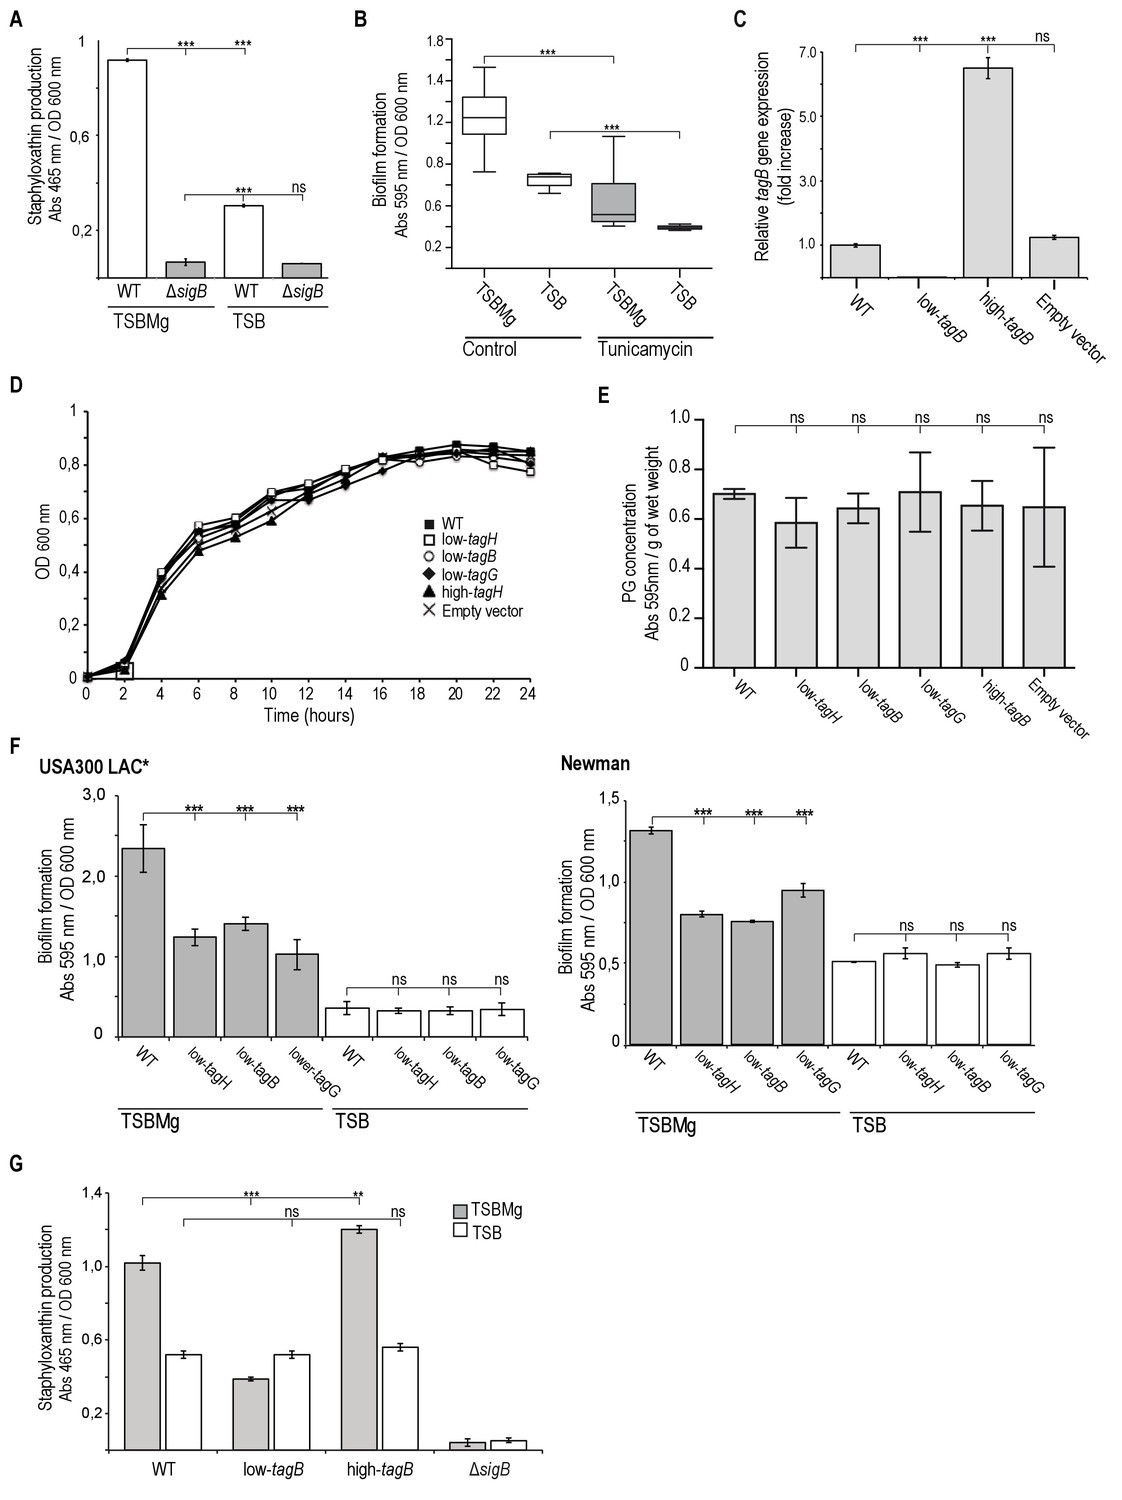 z g hardwood flooring of cell differentiation defines acute and chronic infection cell types intended for extracellular mg2 activates iƒb stress regulon in s auresus